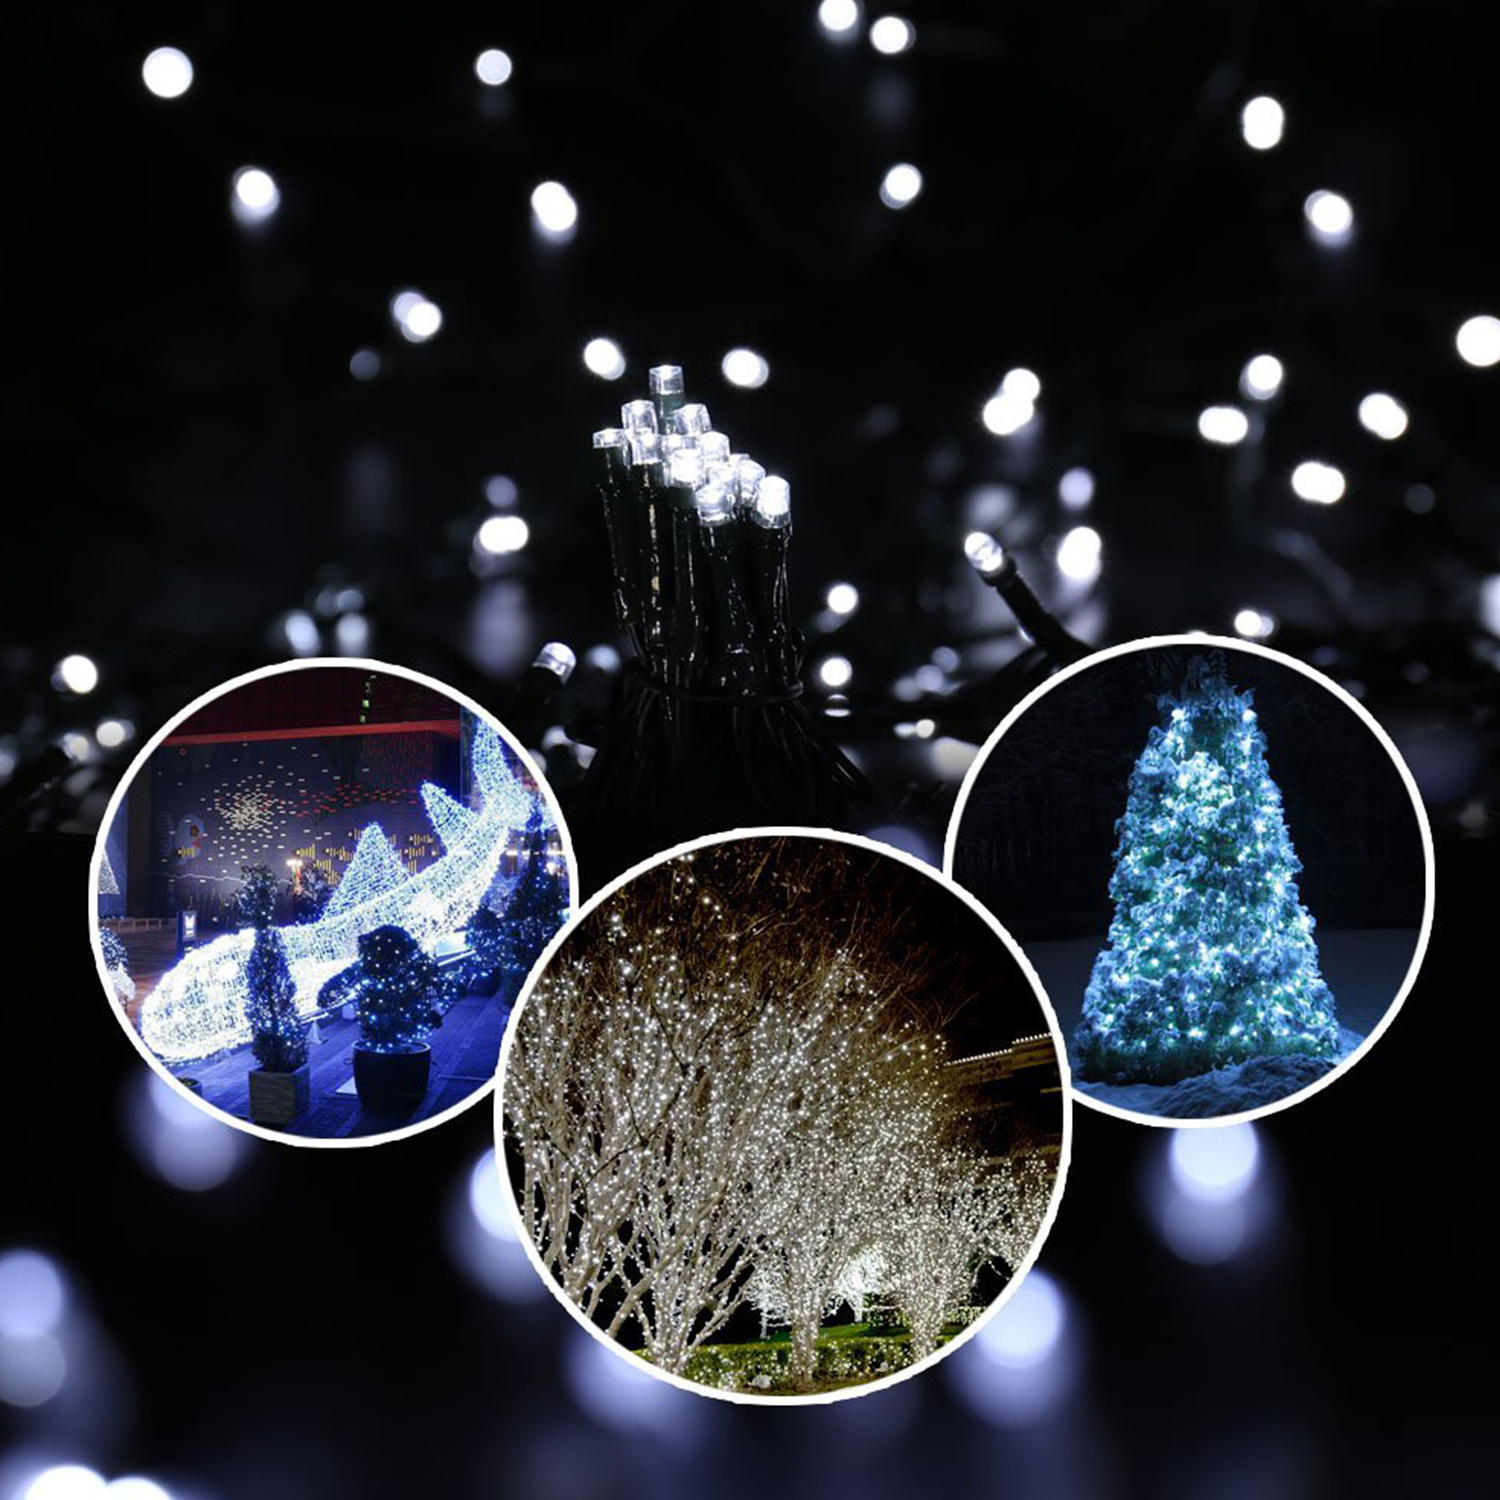 12 50m led solar lichterkette weihnachten leuchten deko dekoration garten neu ebay. Black Bedroom Furniture Sets. Home Design Ideas